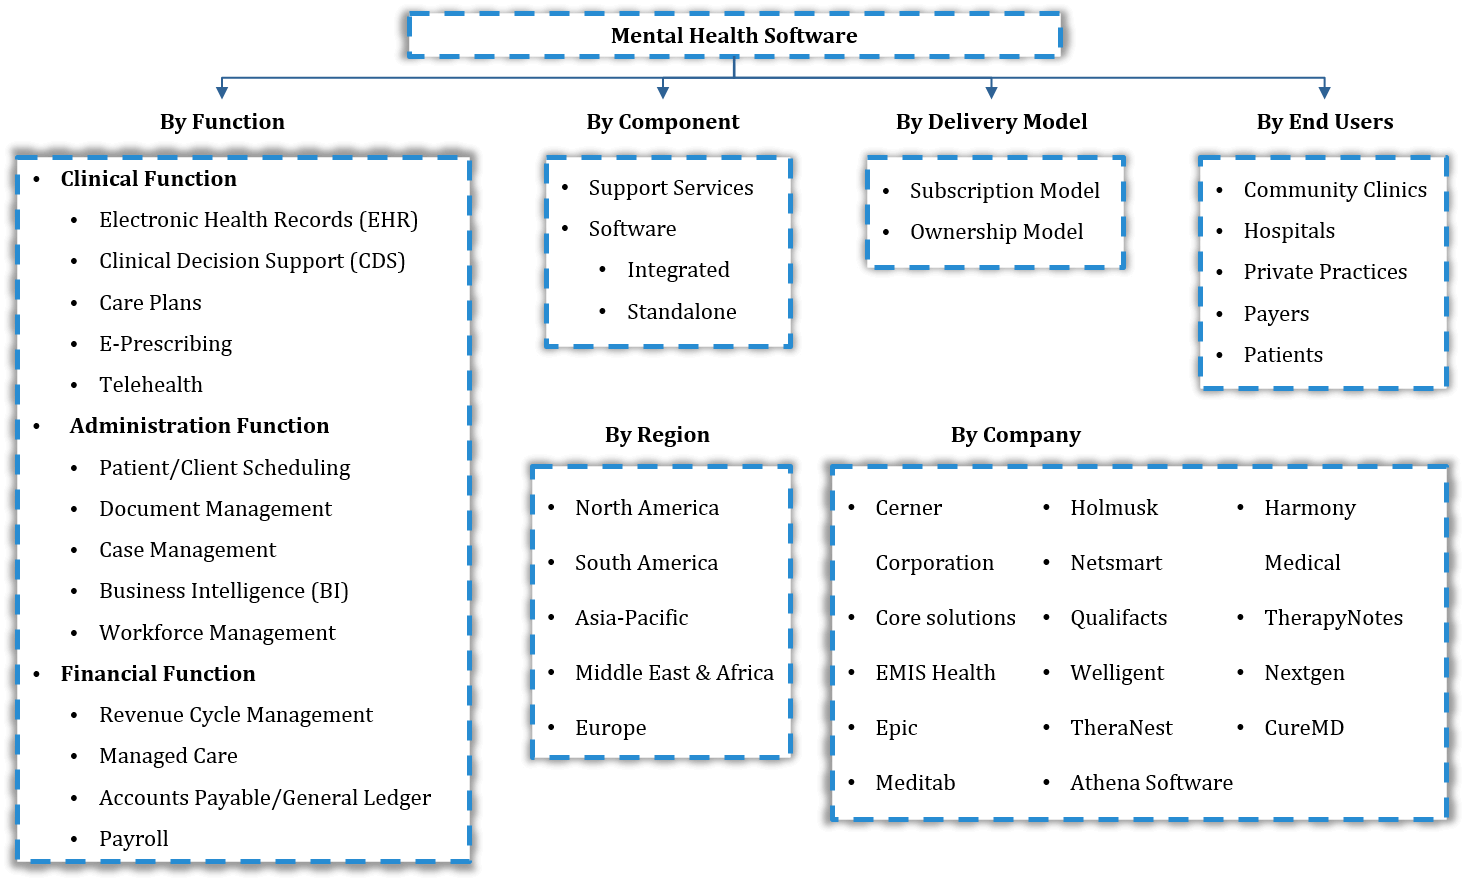 Global Mental Health Software Market Segmentation